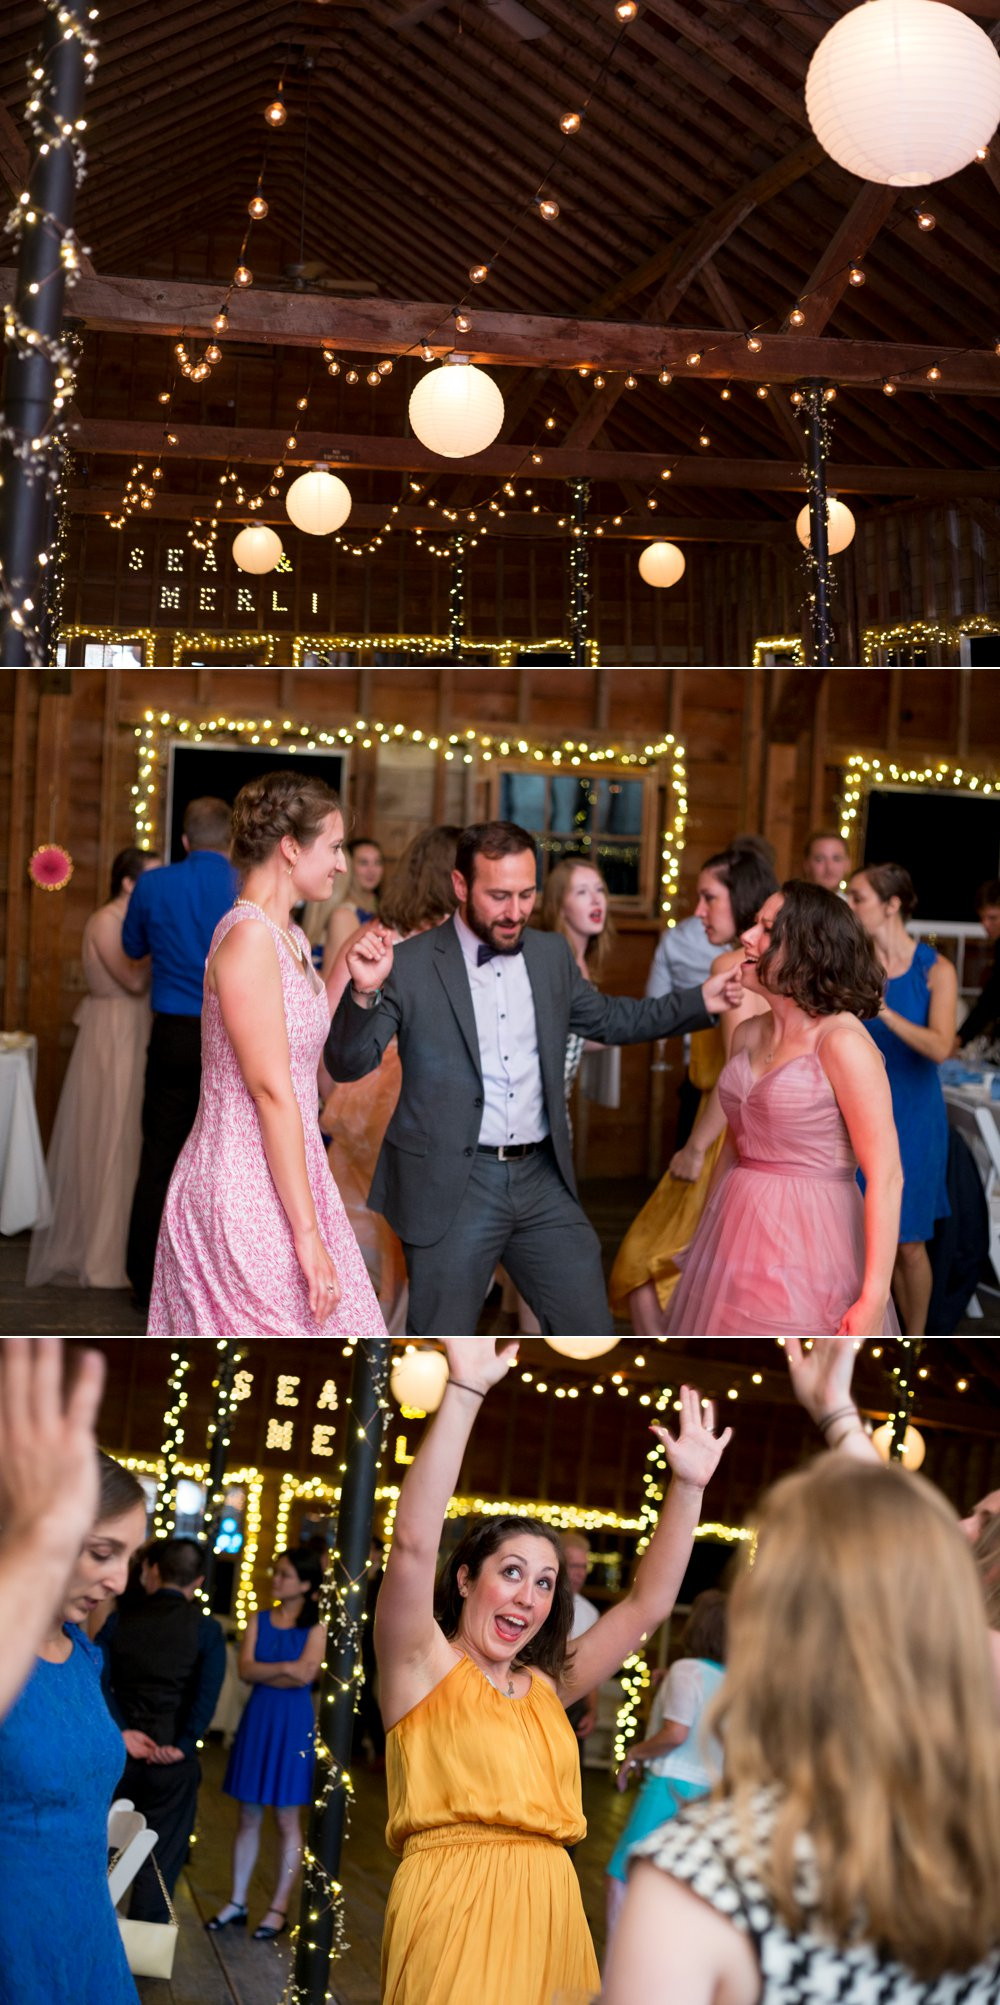 SomerbyJonesPhotography_WestMountainInnWedding_WestMountainInn_RusticVermontWedding_0058.jpg